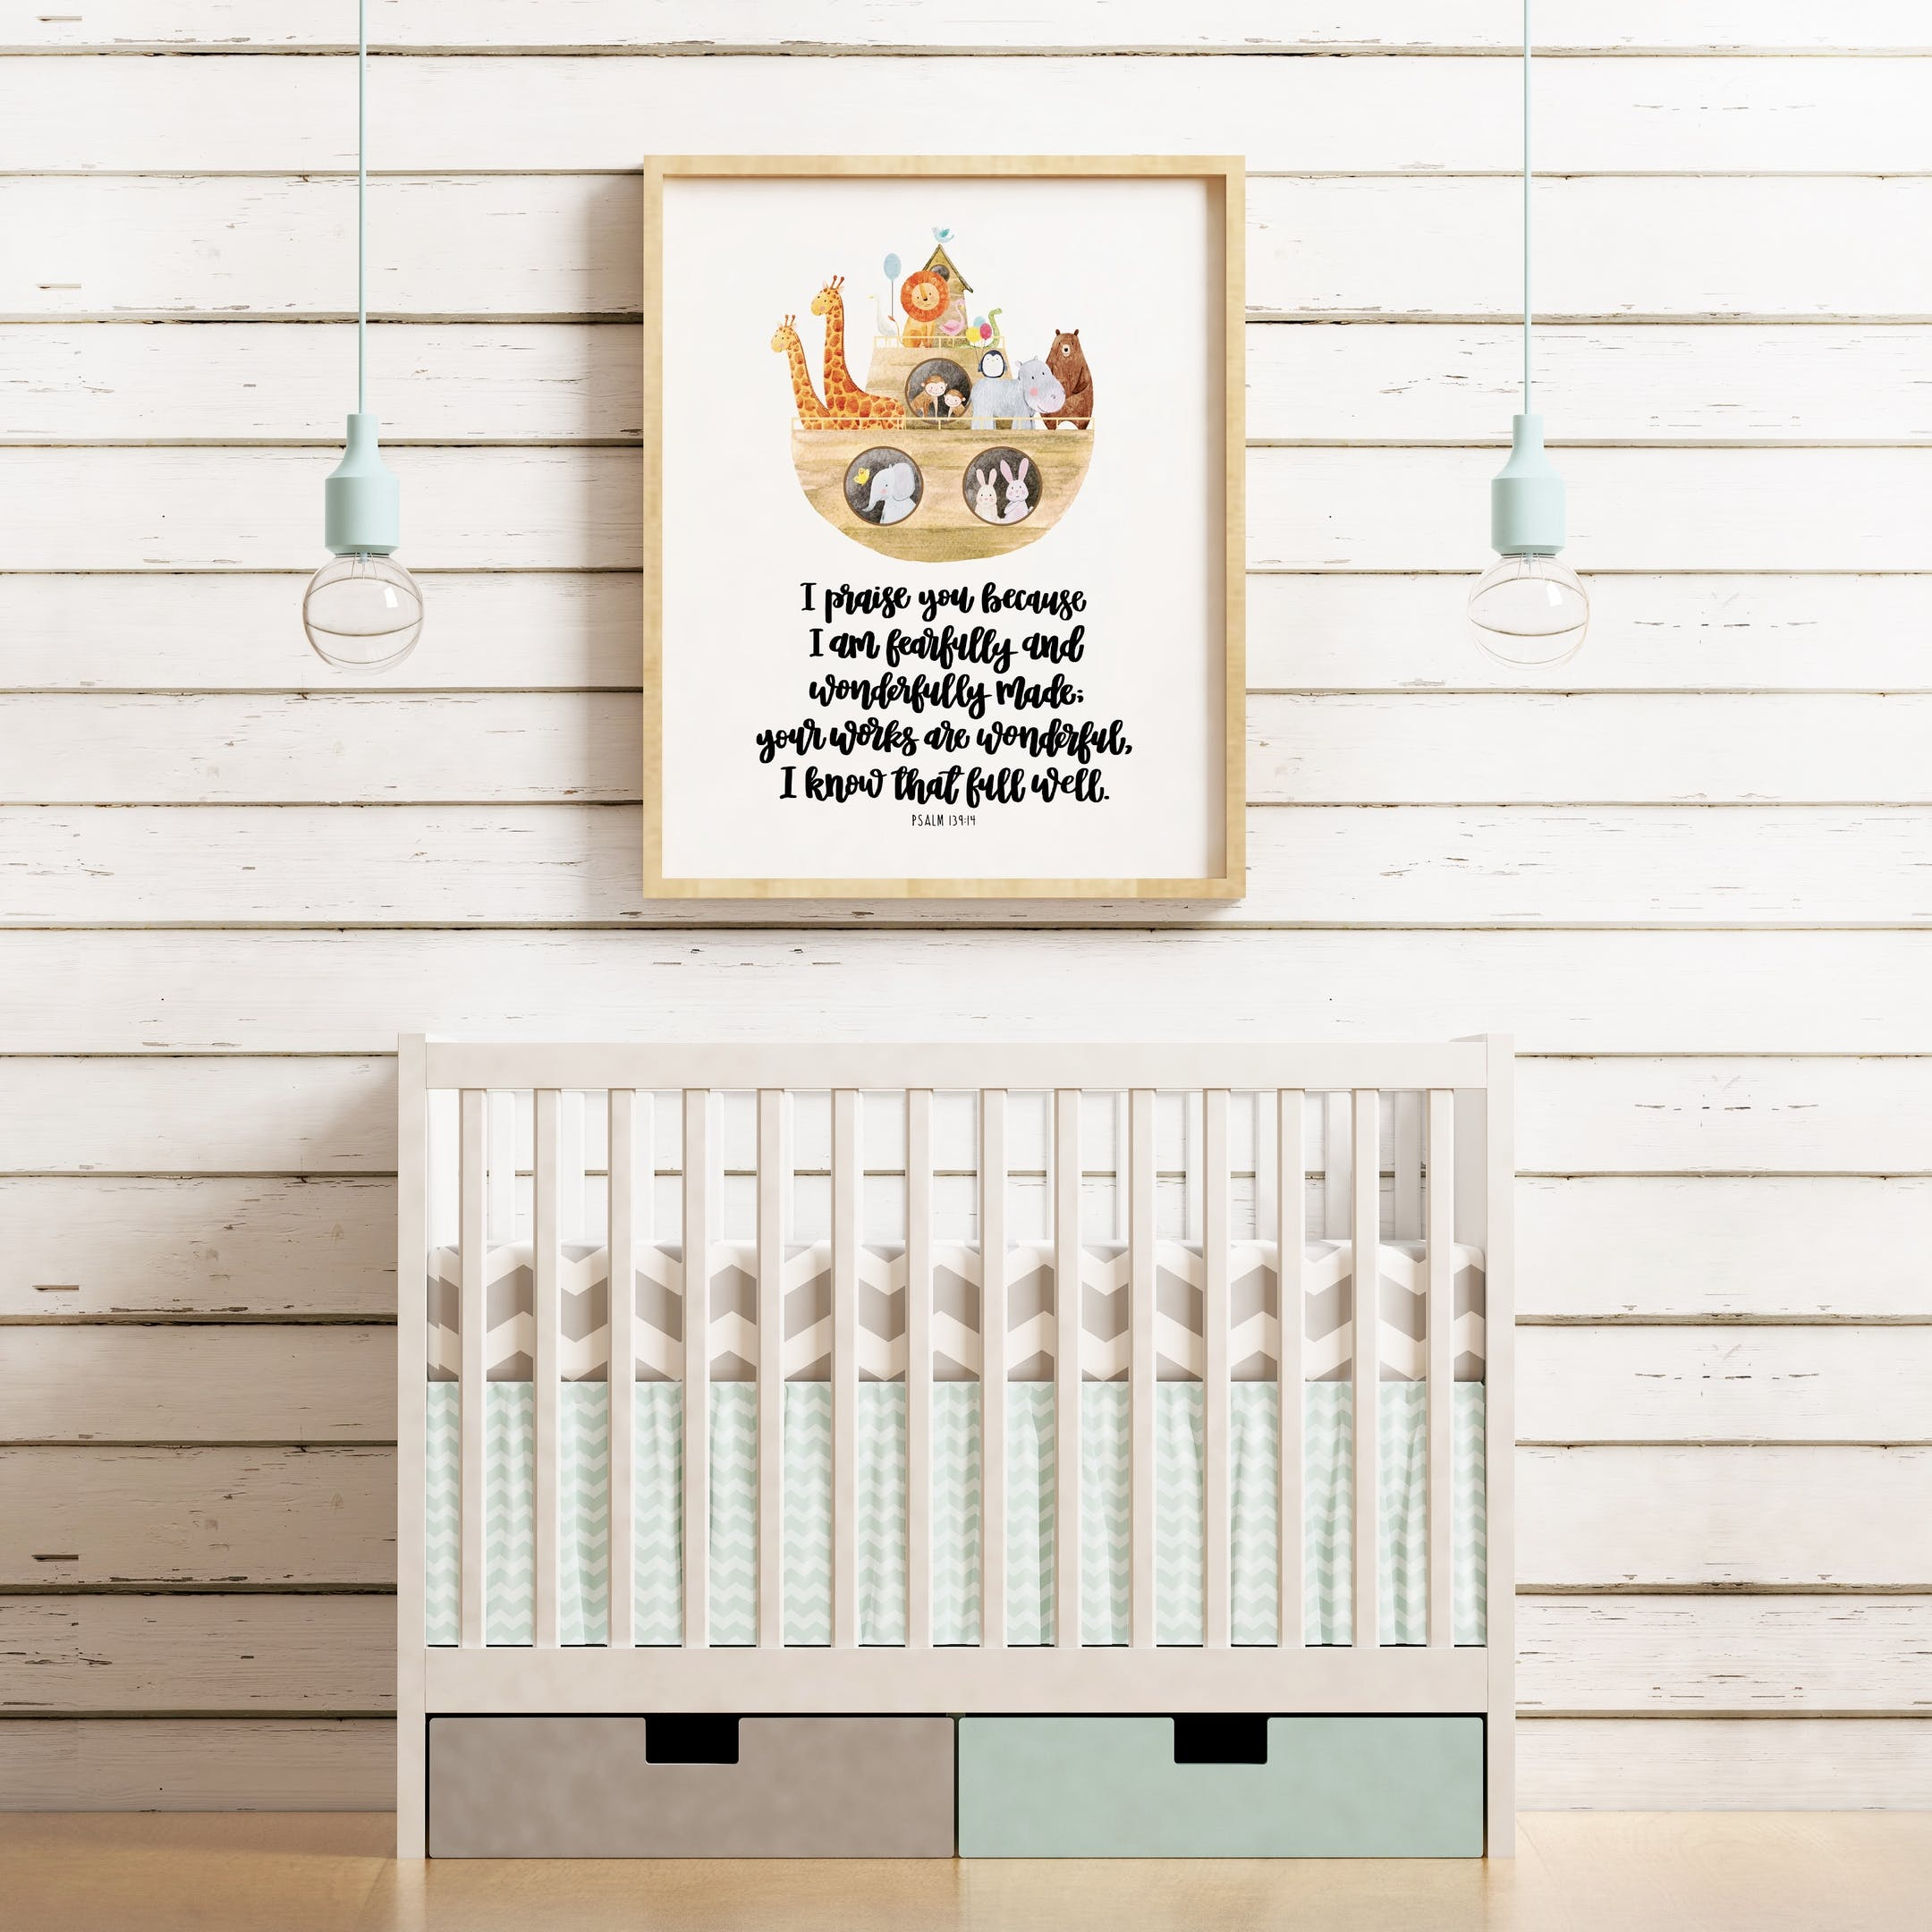 I Am Fearfully And Wonderfully Made - Psalm 139:14 Print - Izzy and Pop